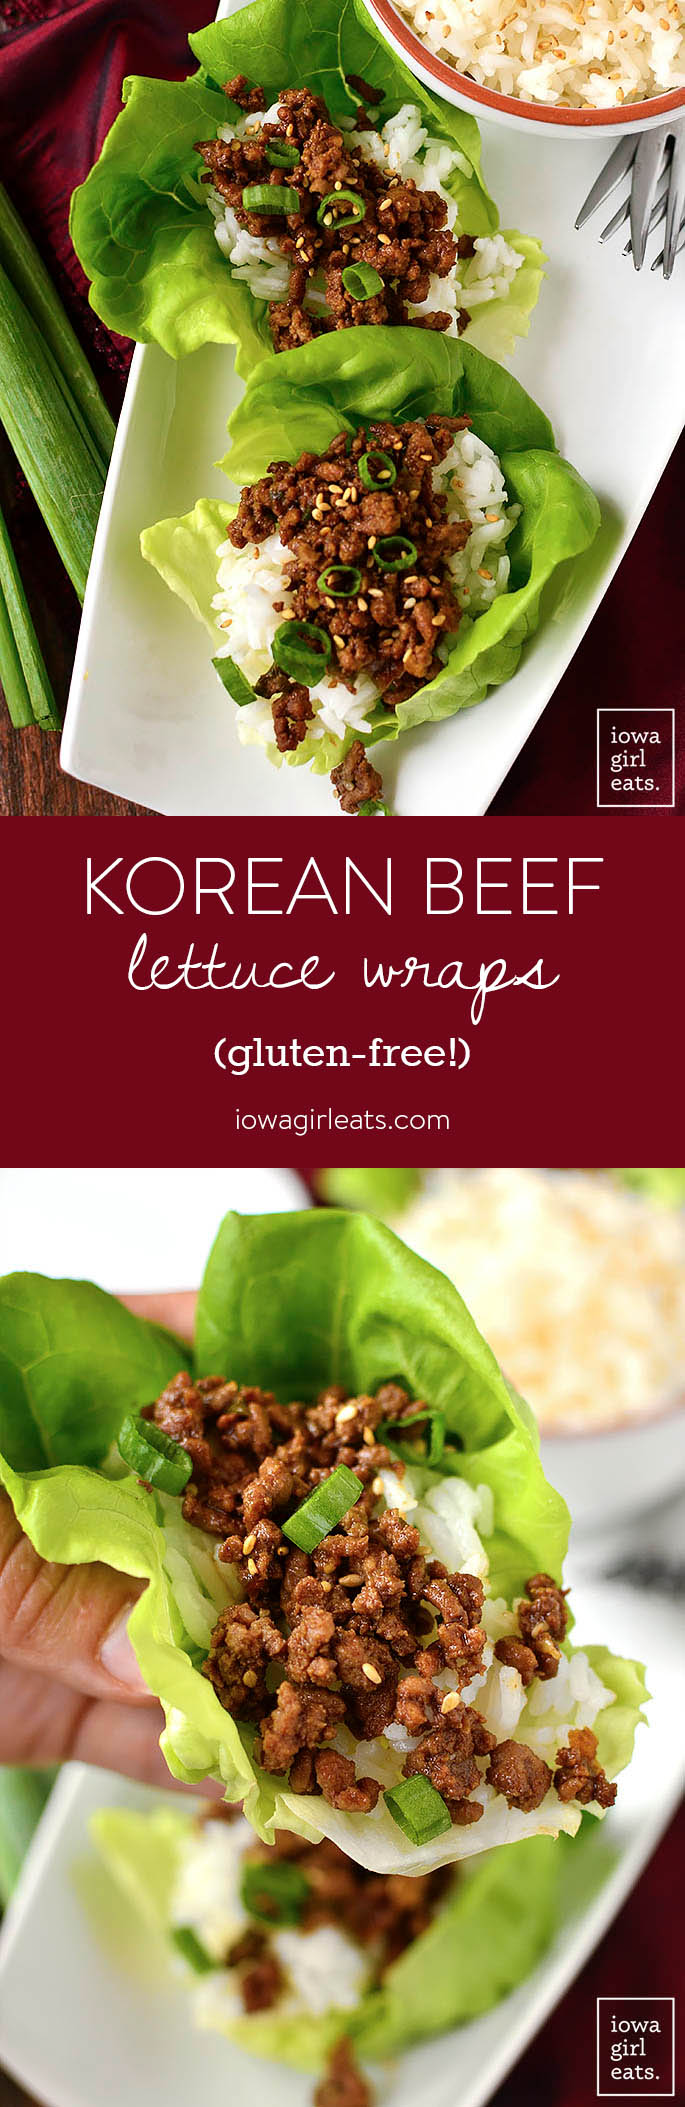 Photo collage of Korean Beef Lettuce Wraps